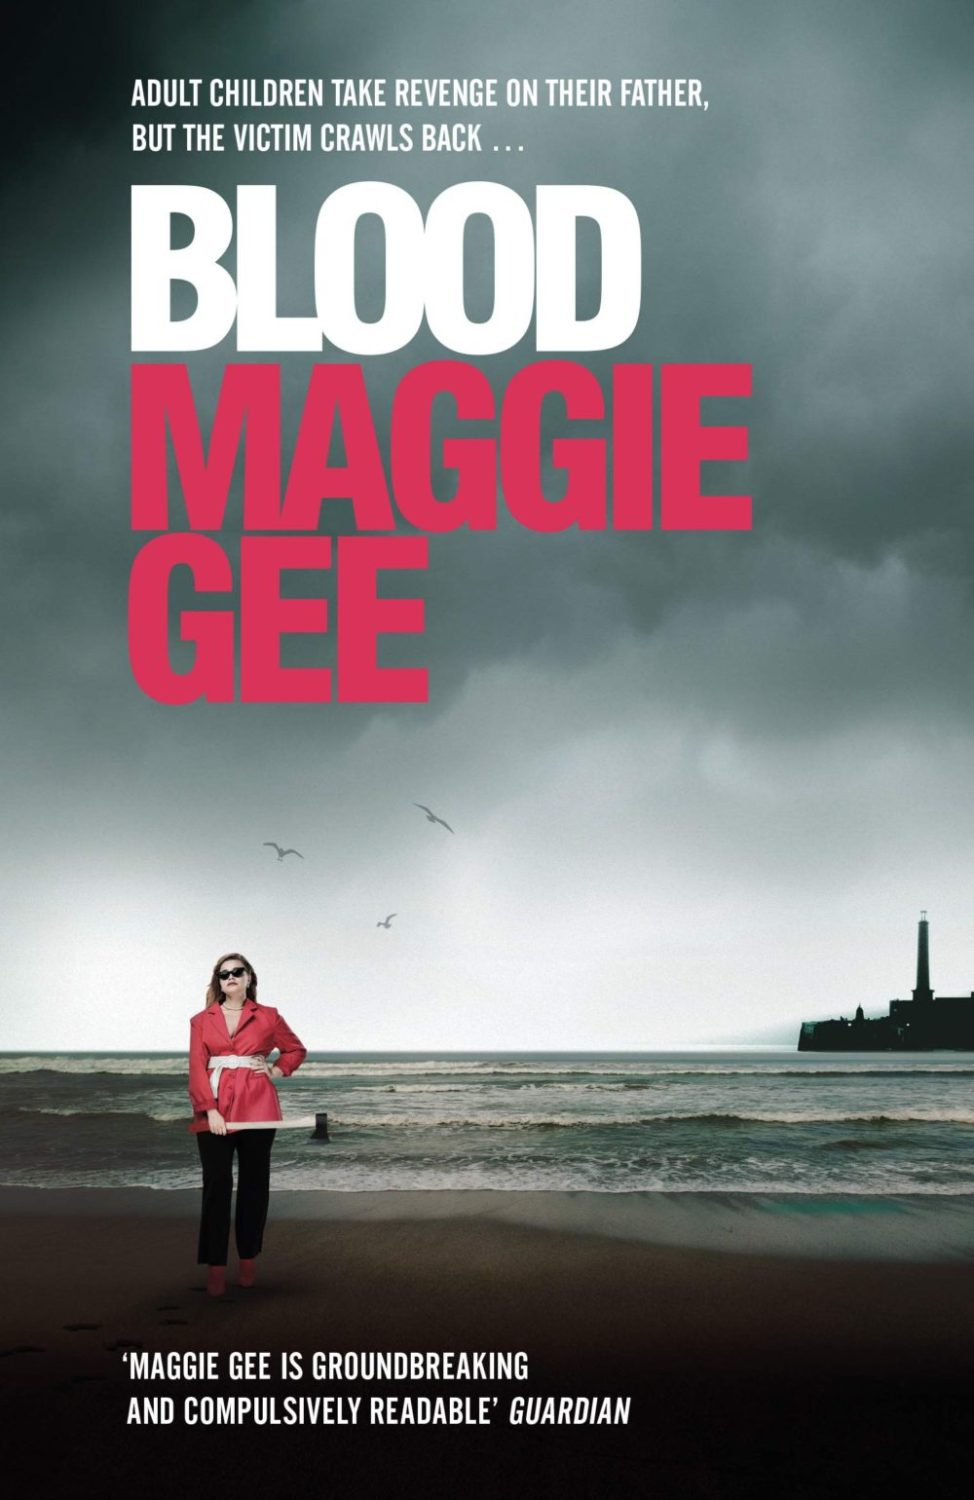 Blood Book Review Buzz Magazine You are watching the buzz on maggie episode 14 online free at watchcartoononline.bz. buzz magazine